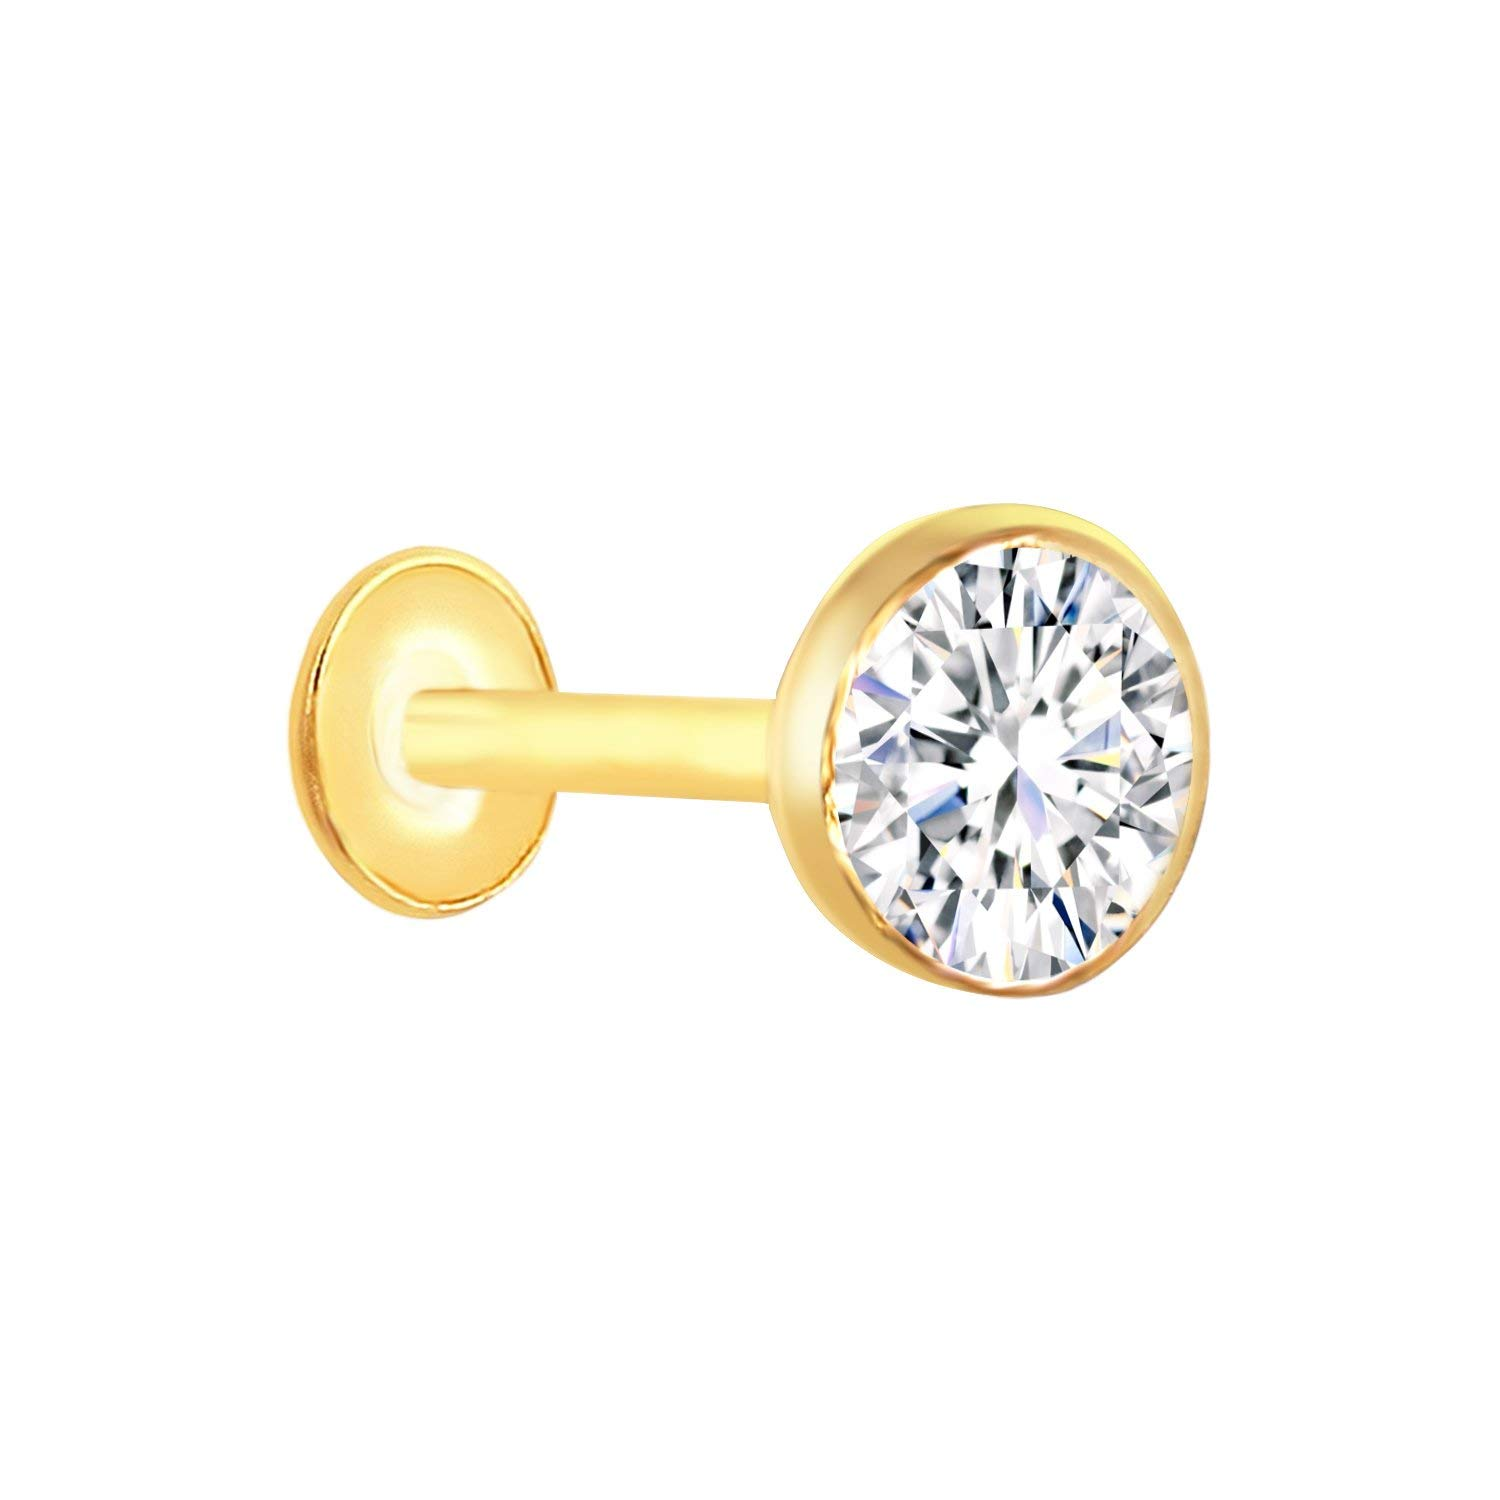 Buy Vandana Jewellery Girl S Metal 18 Carat Pure Gold Nose Pins Studs Diamond Nose Pins Stud Yellow Online At Low Prices In India Amazon Jewellery Store Amazon In